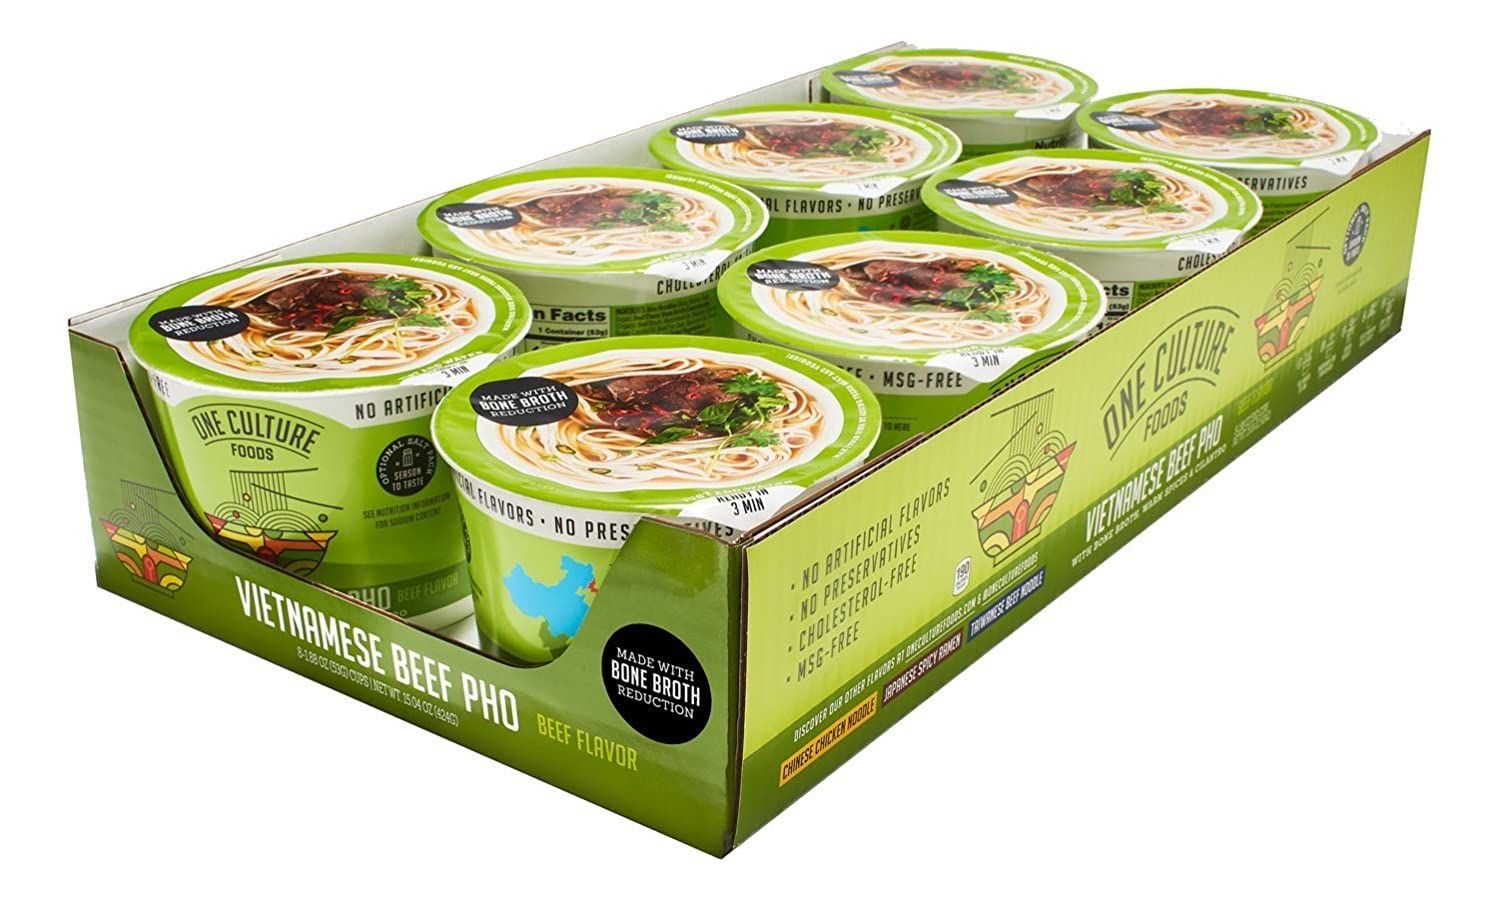 One Culture Foods Bone Broth Instant Cup Noodles, Vietnamese Beef Pho -  Natural -